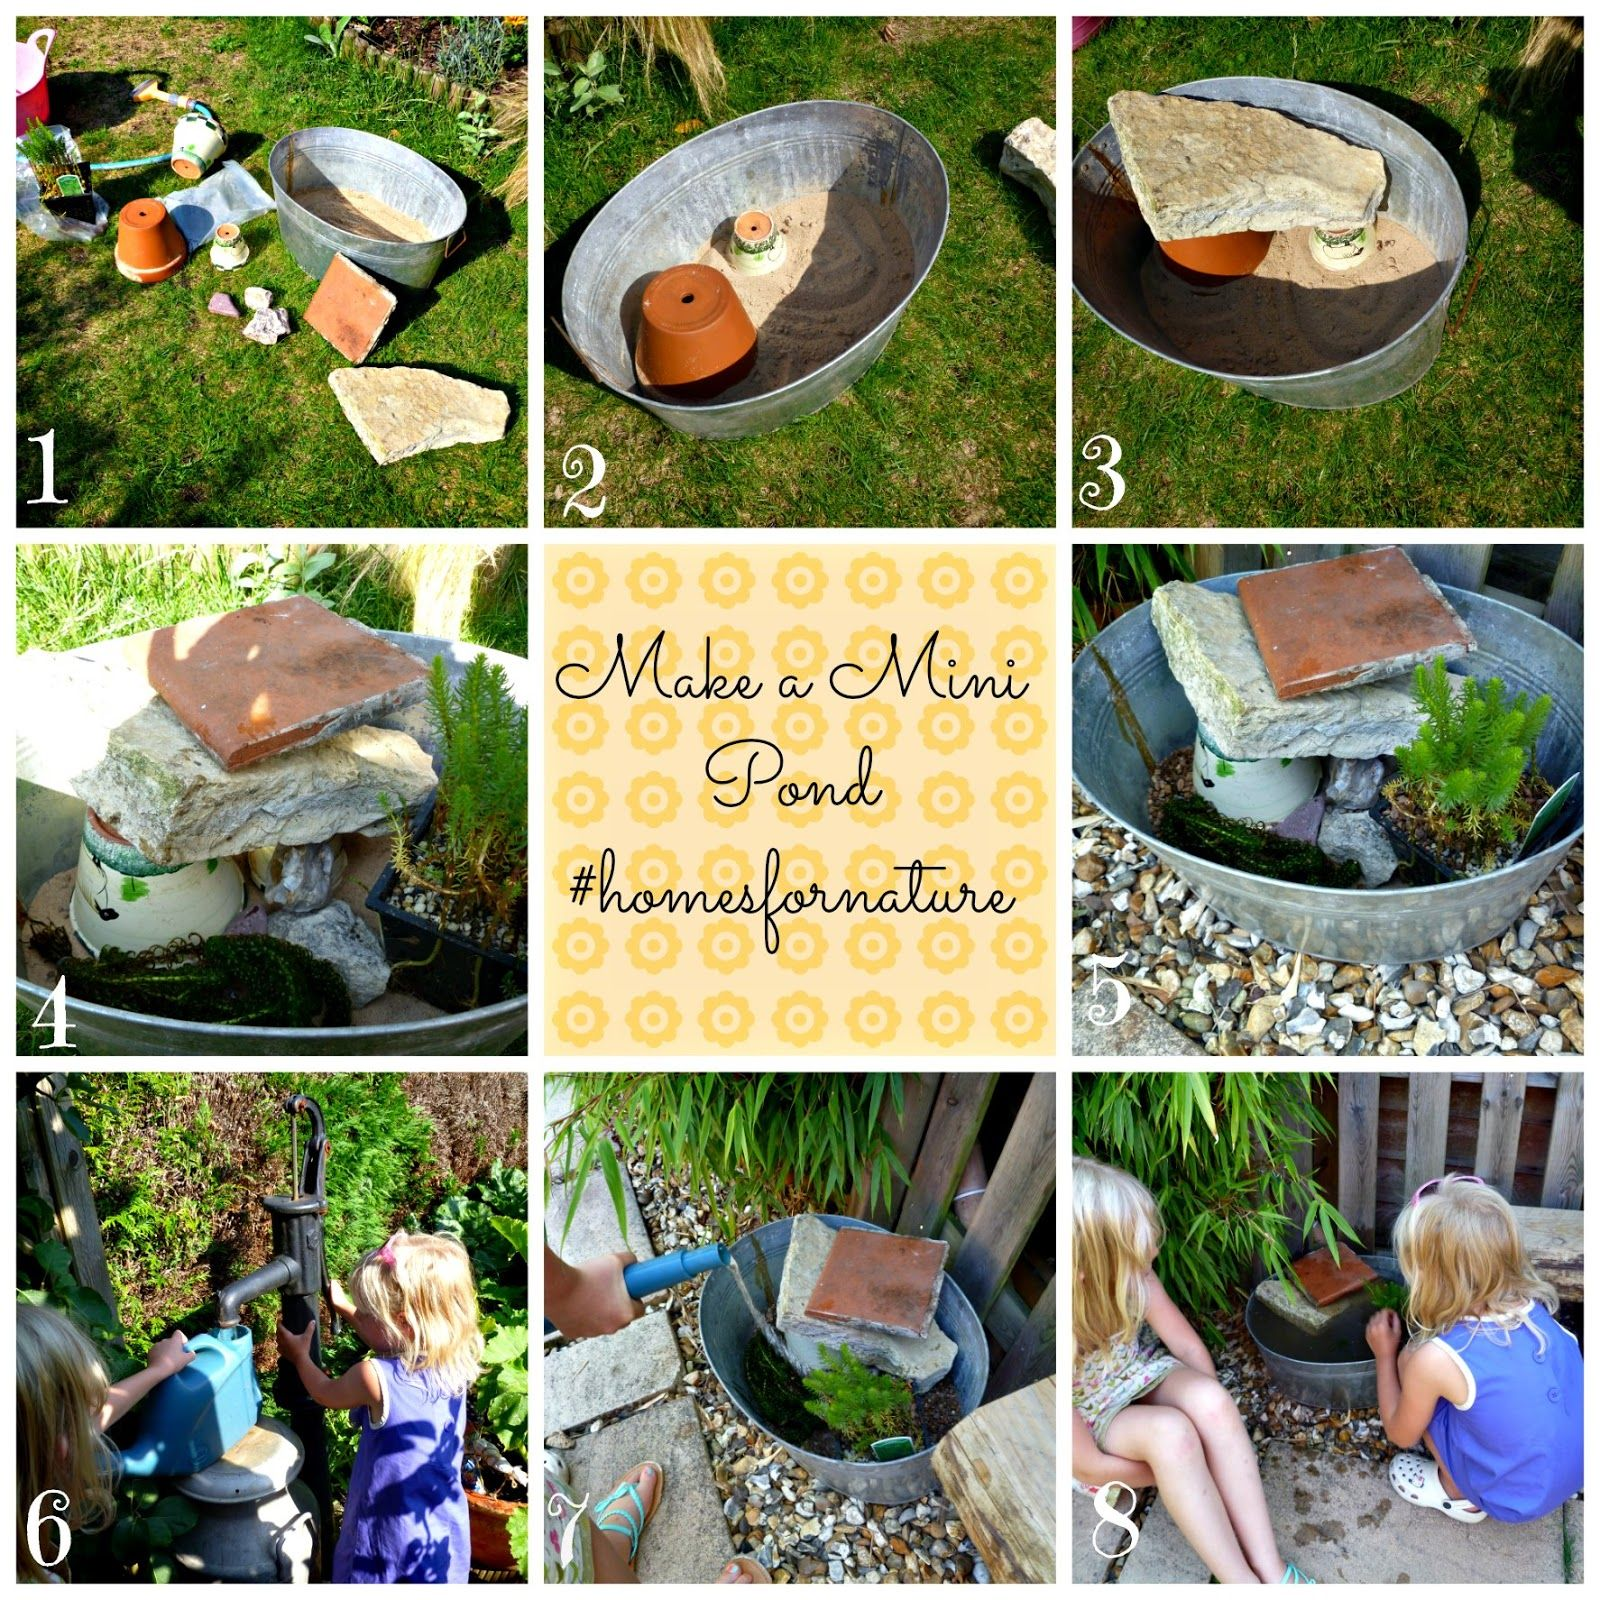 Wildlife Pond Surrounded By Pebbles: Make A Mini Pond #homesfornature